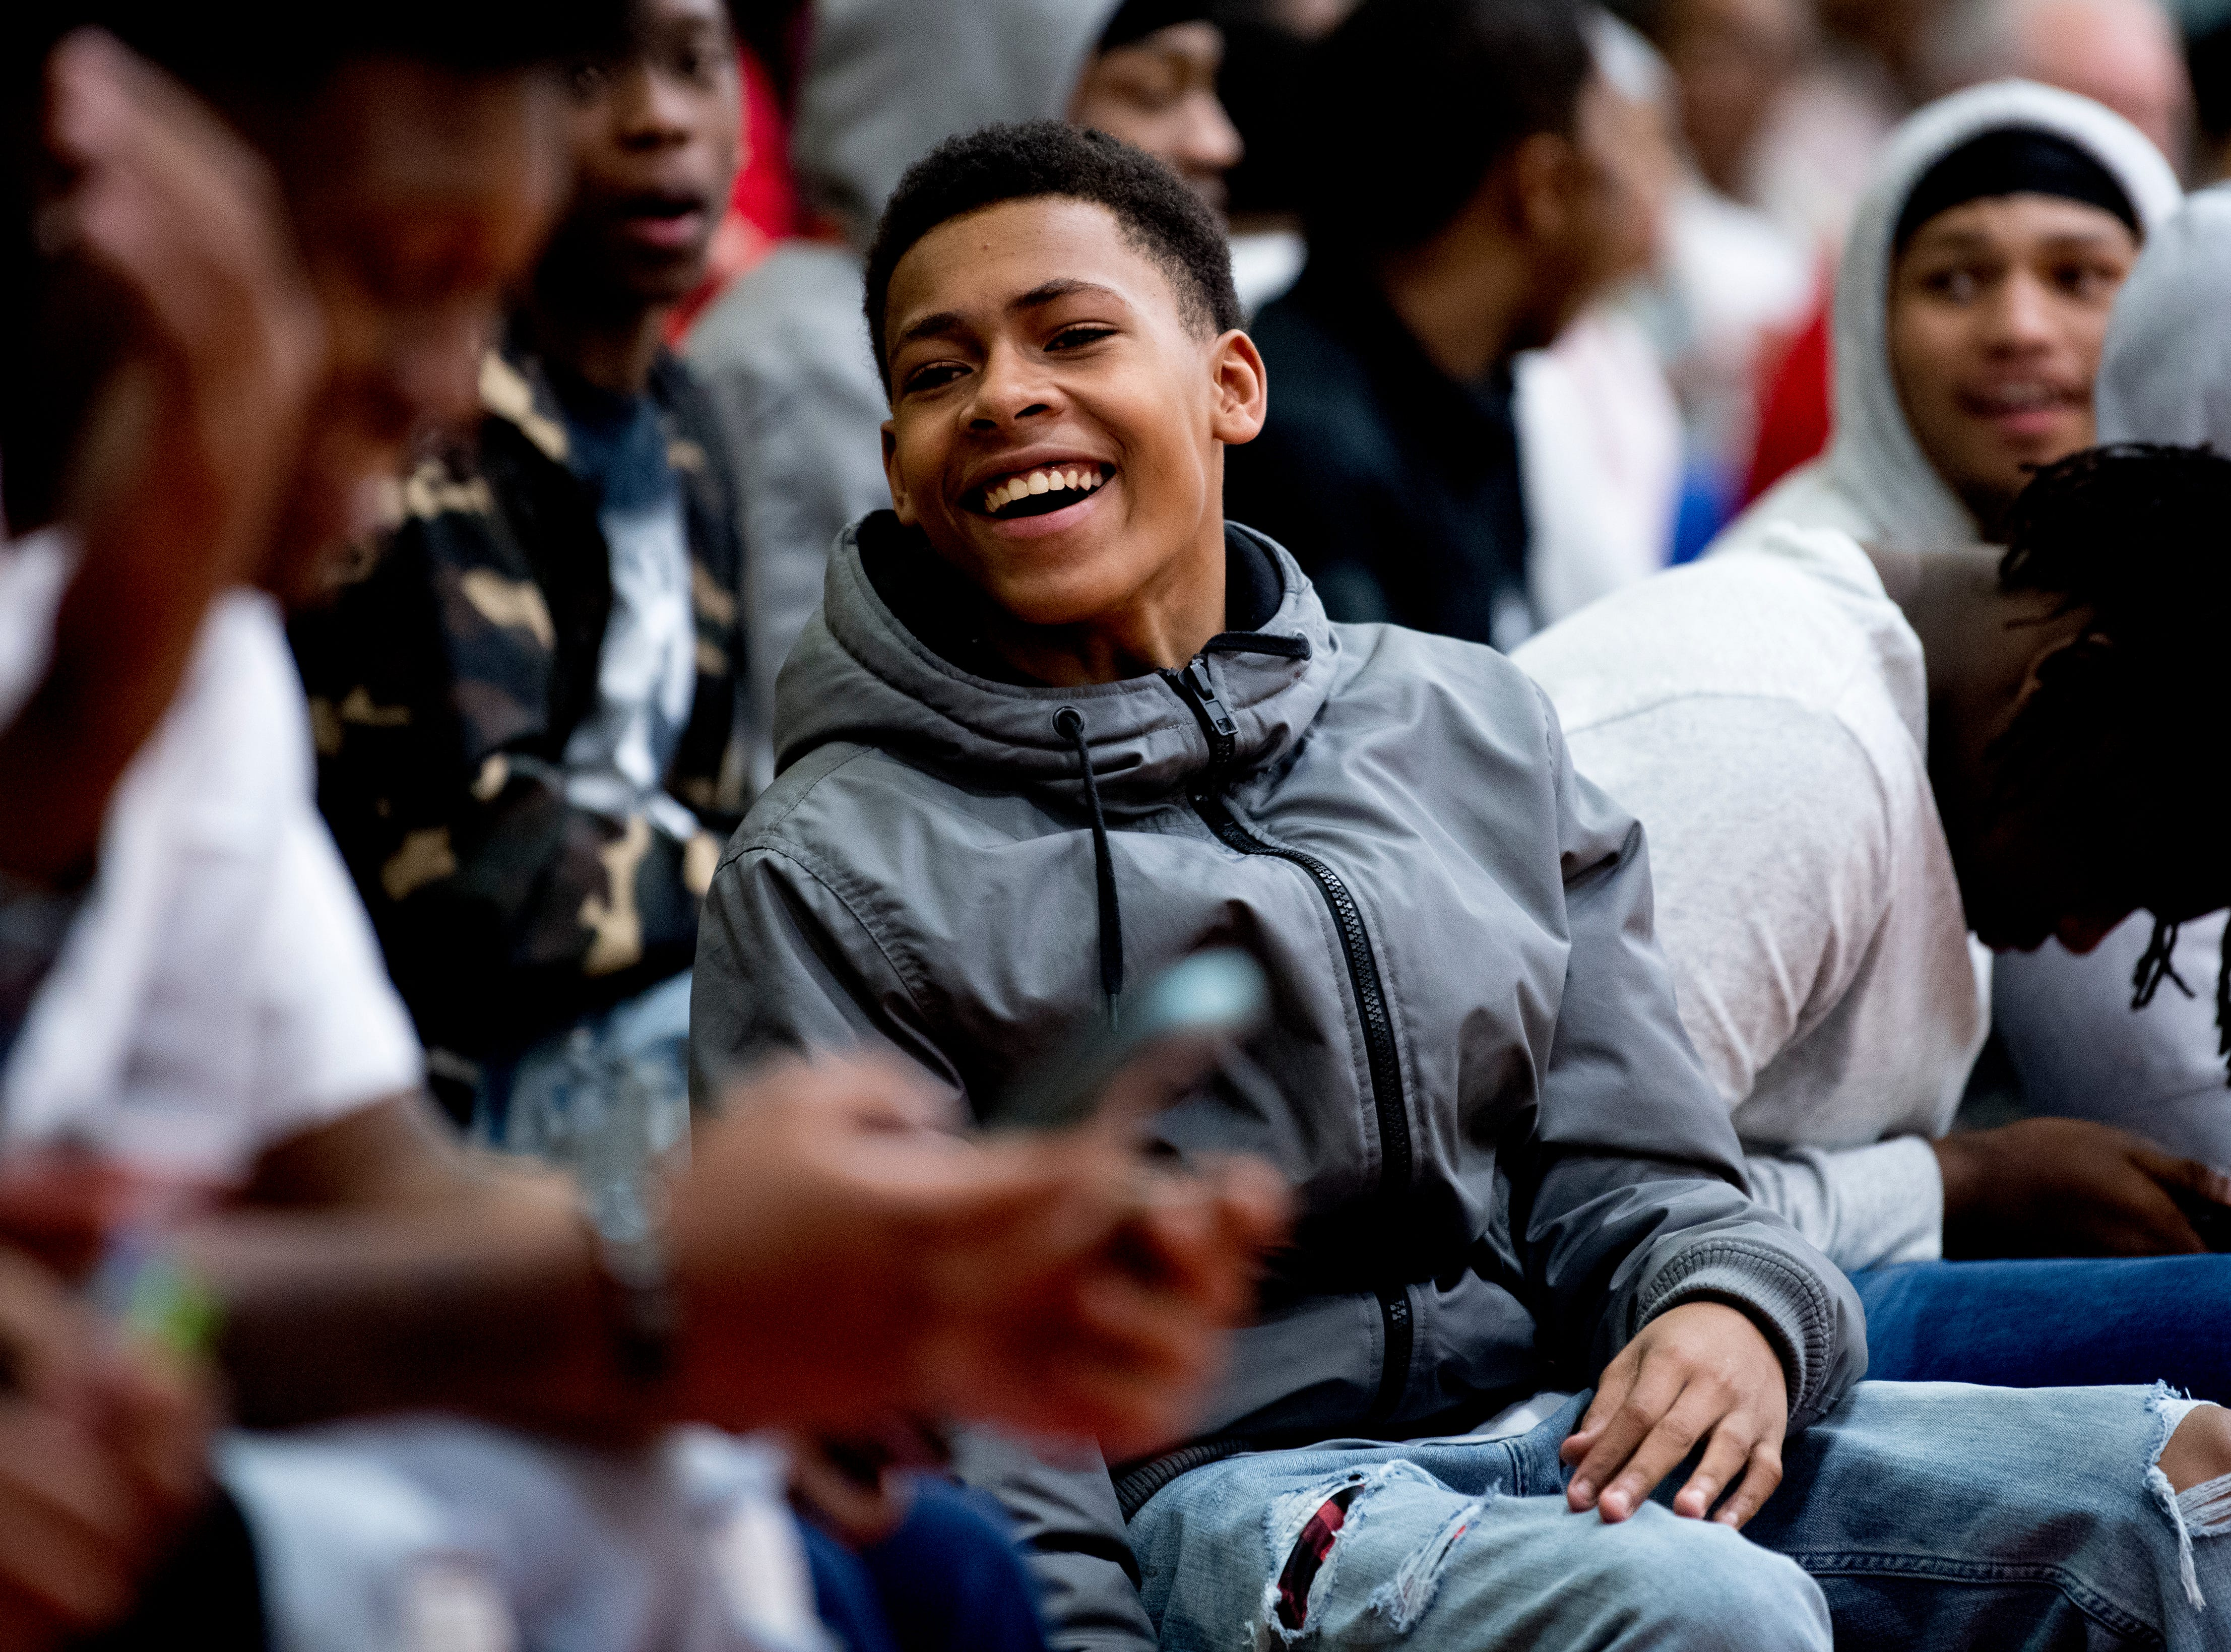 Austin-East fans share a laugh in the stands during a game between Austin-East and Alcoa at Austin-East High School in Knoxville, Tennessee on Friday, January 18, 2019.